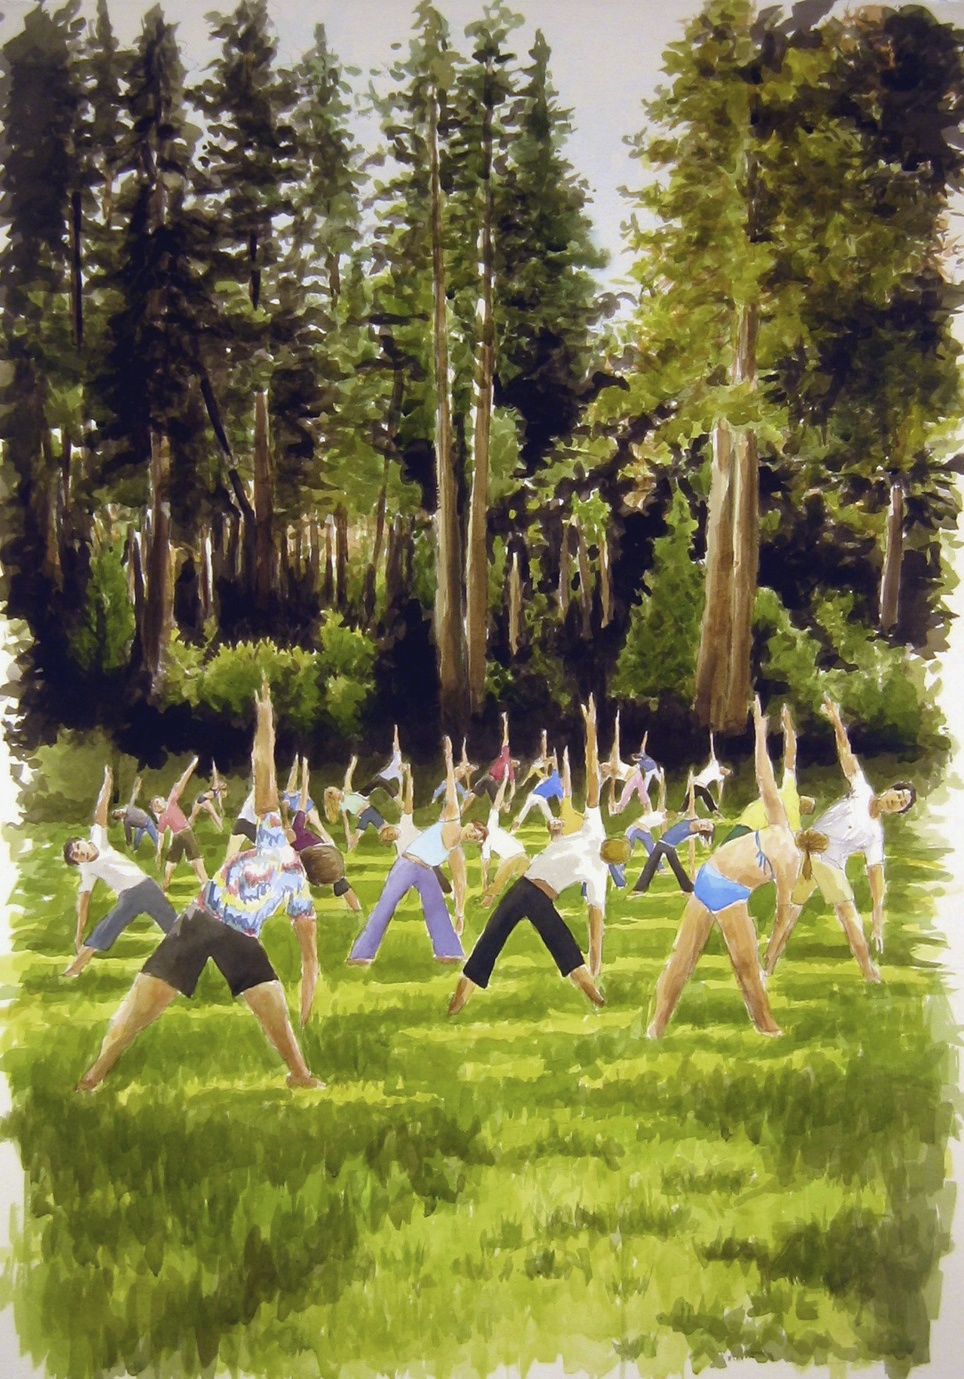 Yoga in the Meadow, 2008, watercolor & acrylic on paper, 40 x 31 in.